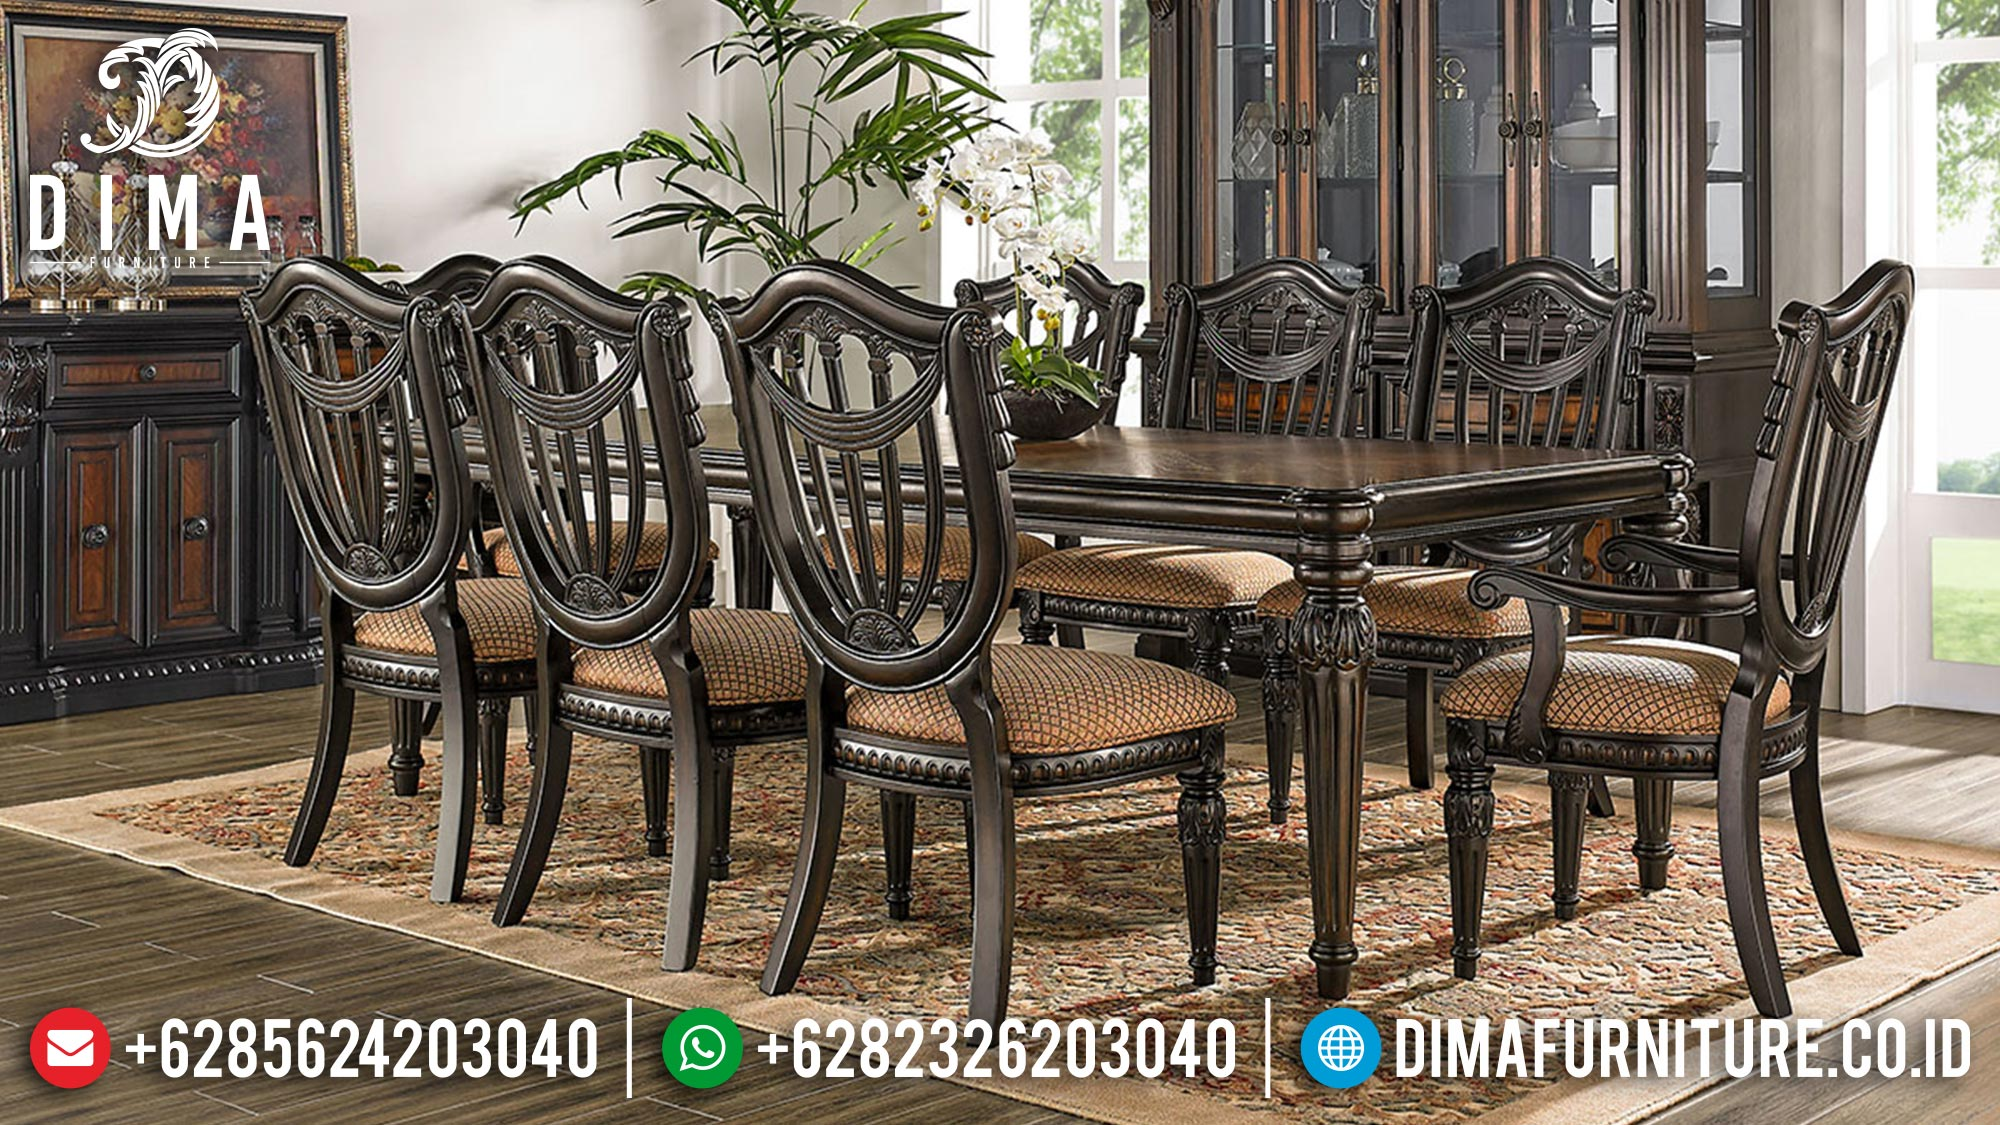 Beauty Design Meja Makan Minimalis Classic Furniture Jepara Luxury Mm-1056